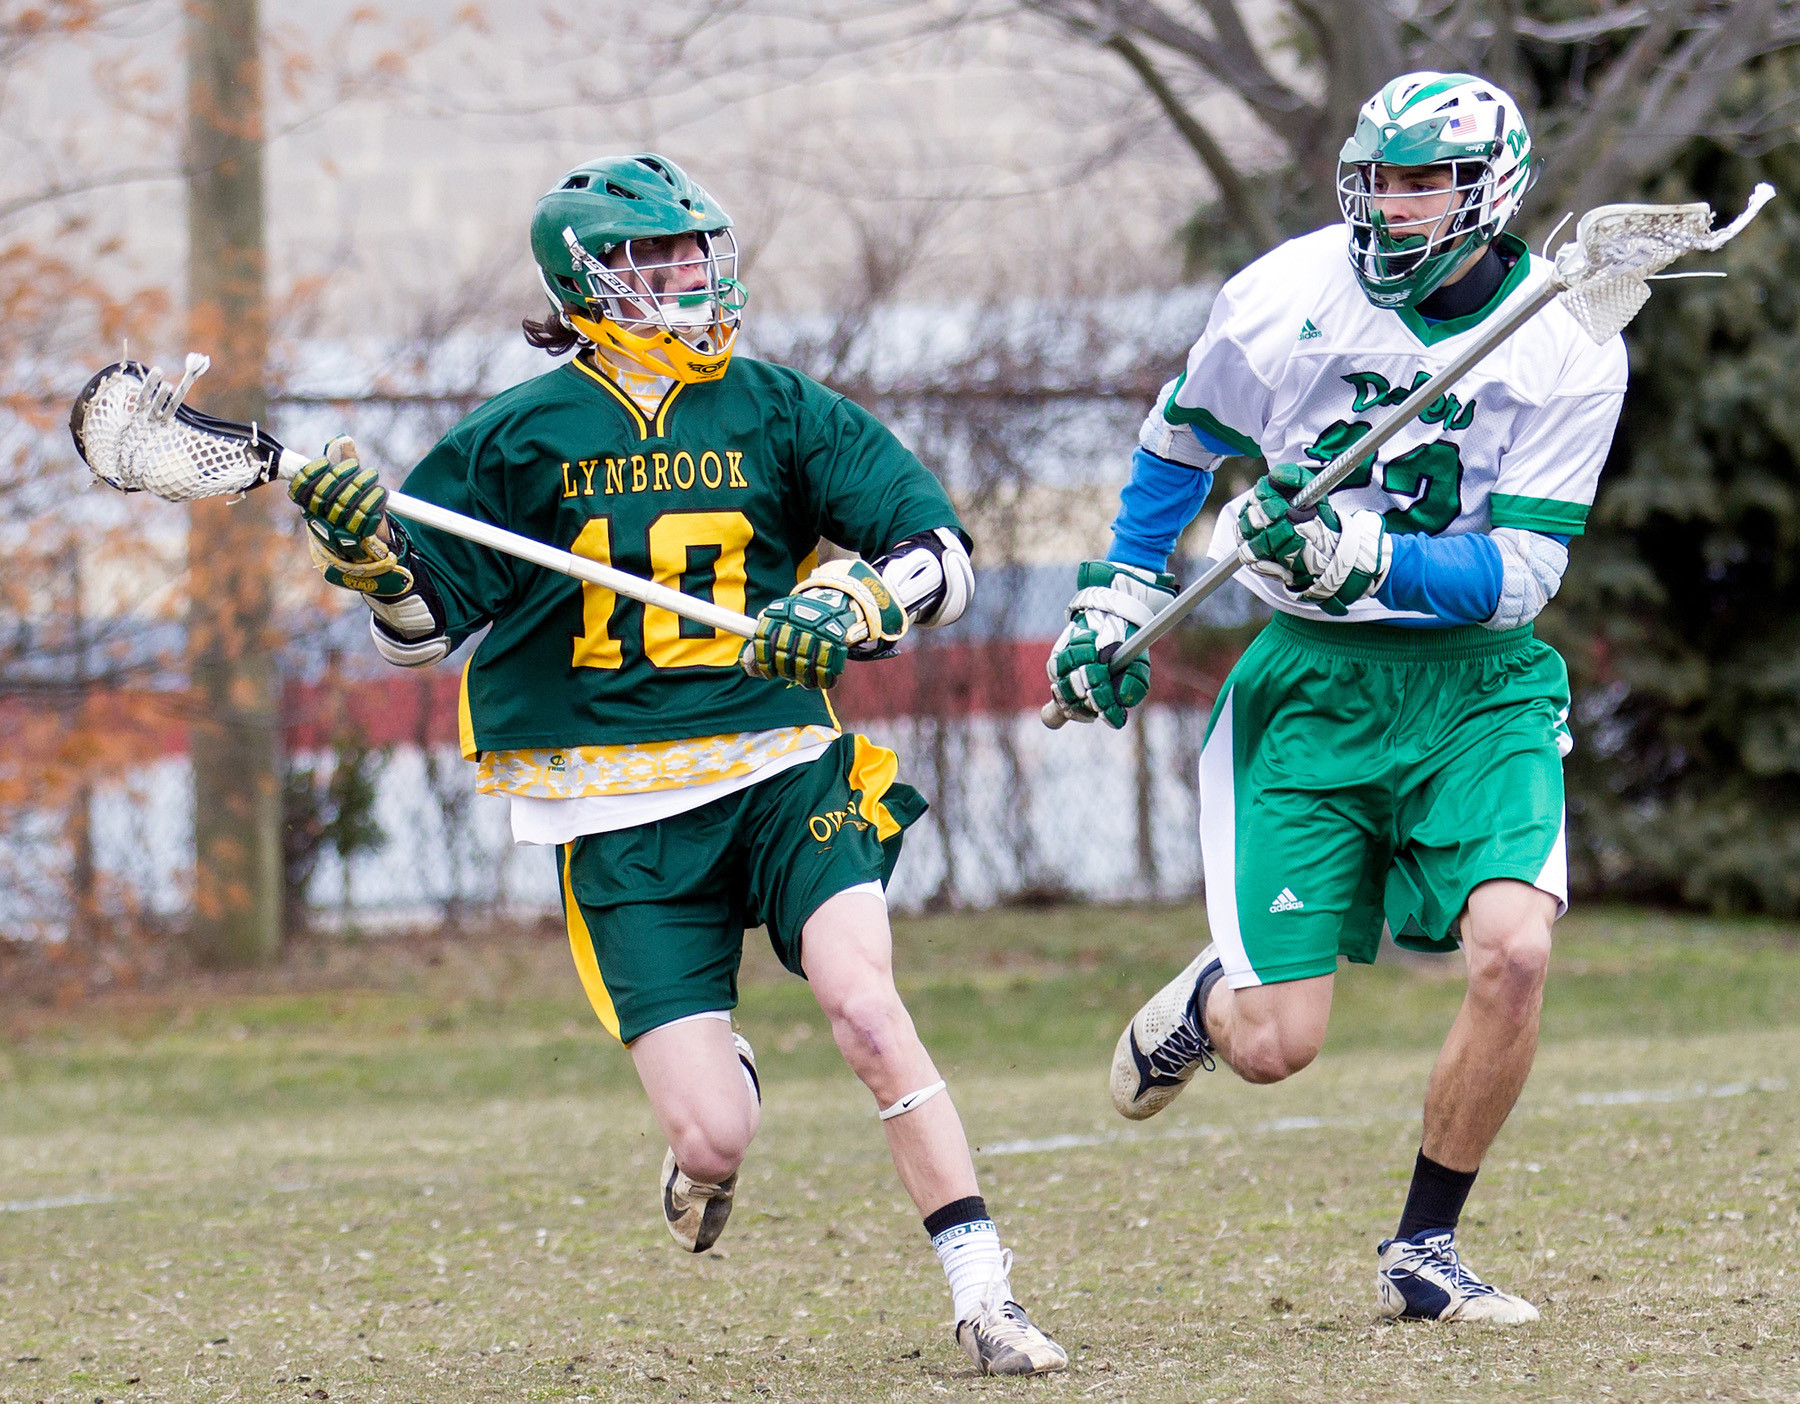 The playmaking skills of senior Nick LoCicero, left, will be one of the keys to success for Lynbrook.